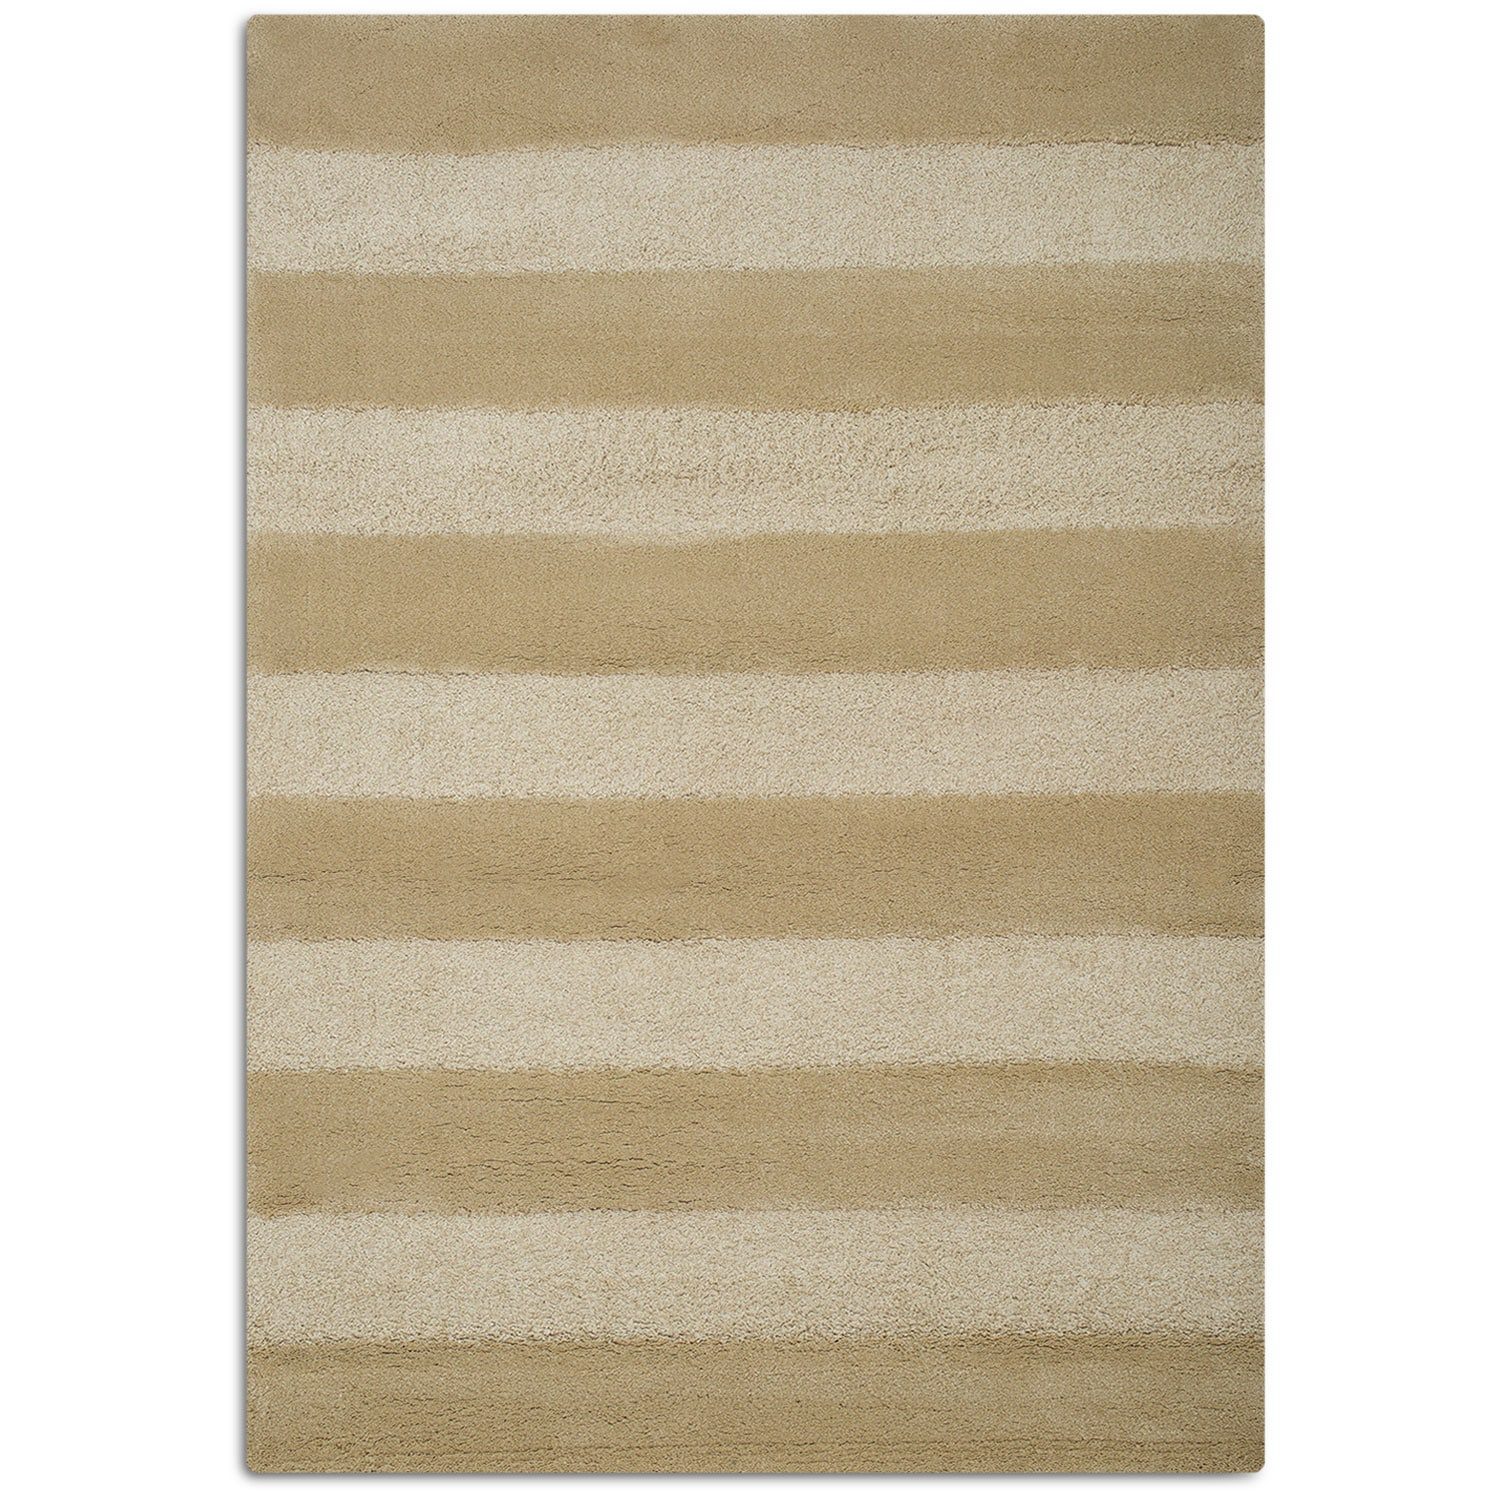 Elements 5' x 8' Area Rug - Ivory